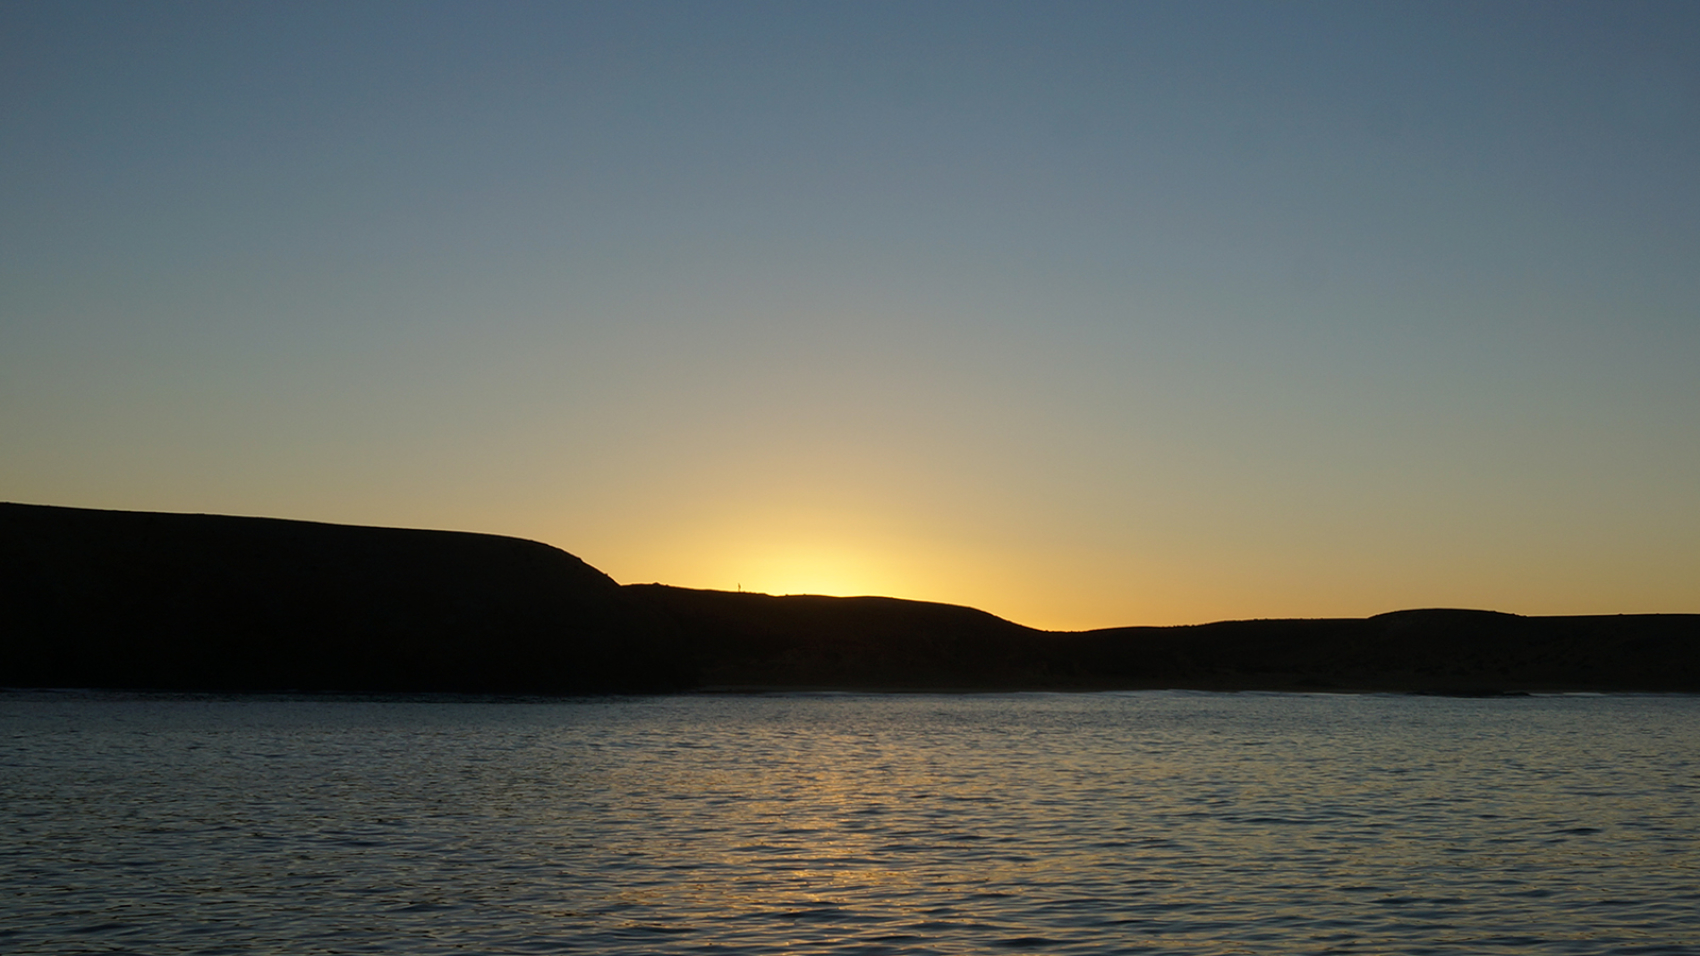 sunrise at Playa Papagayo, Lanzarote